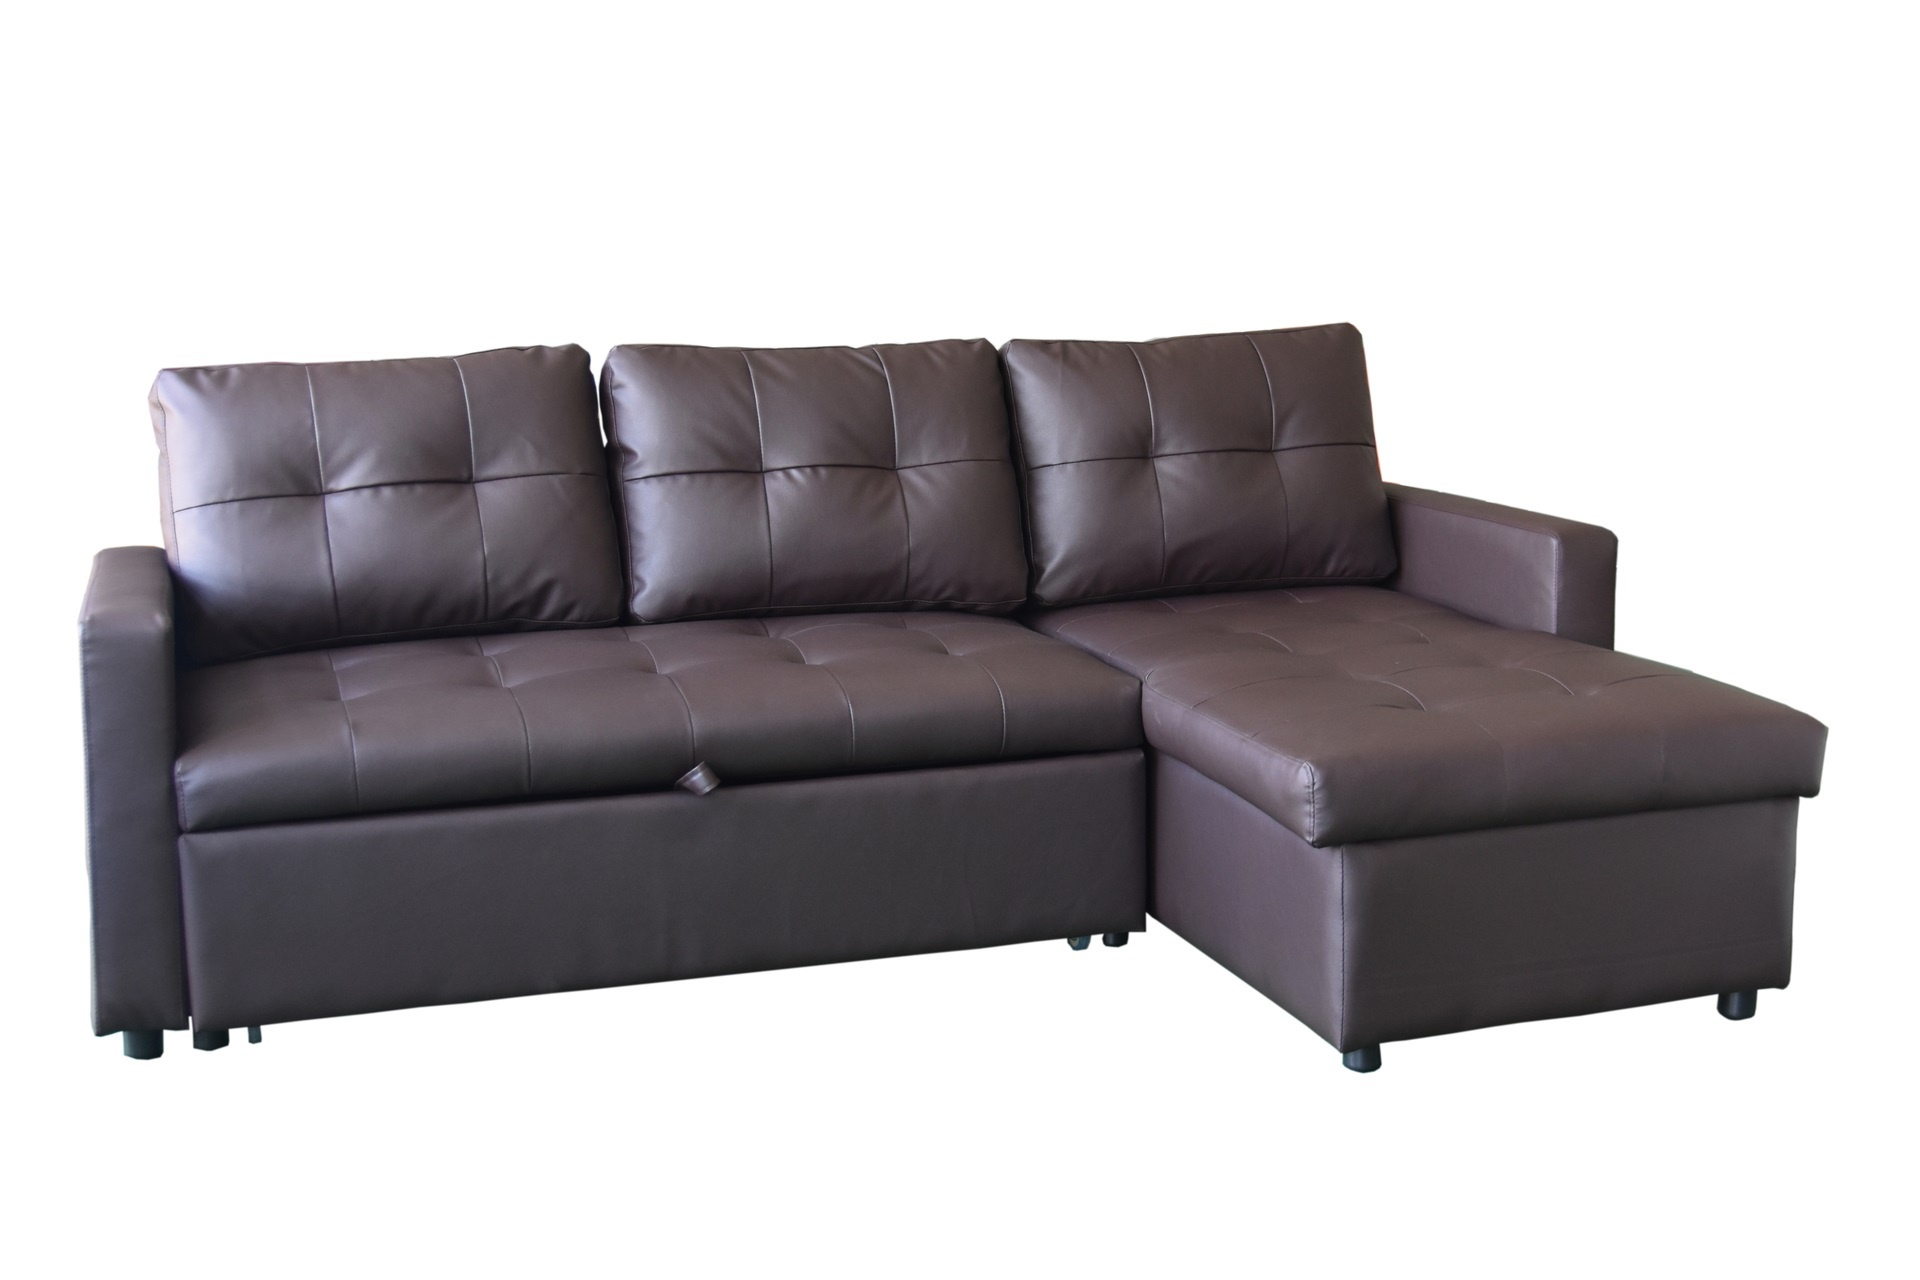 Milano Sofa Bed with Storage Brown LOUNGE SUITES